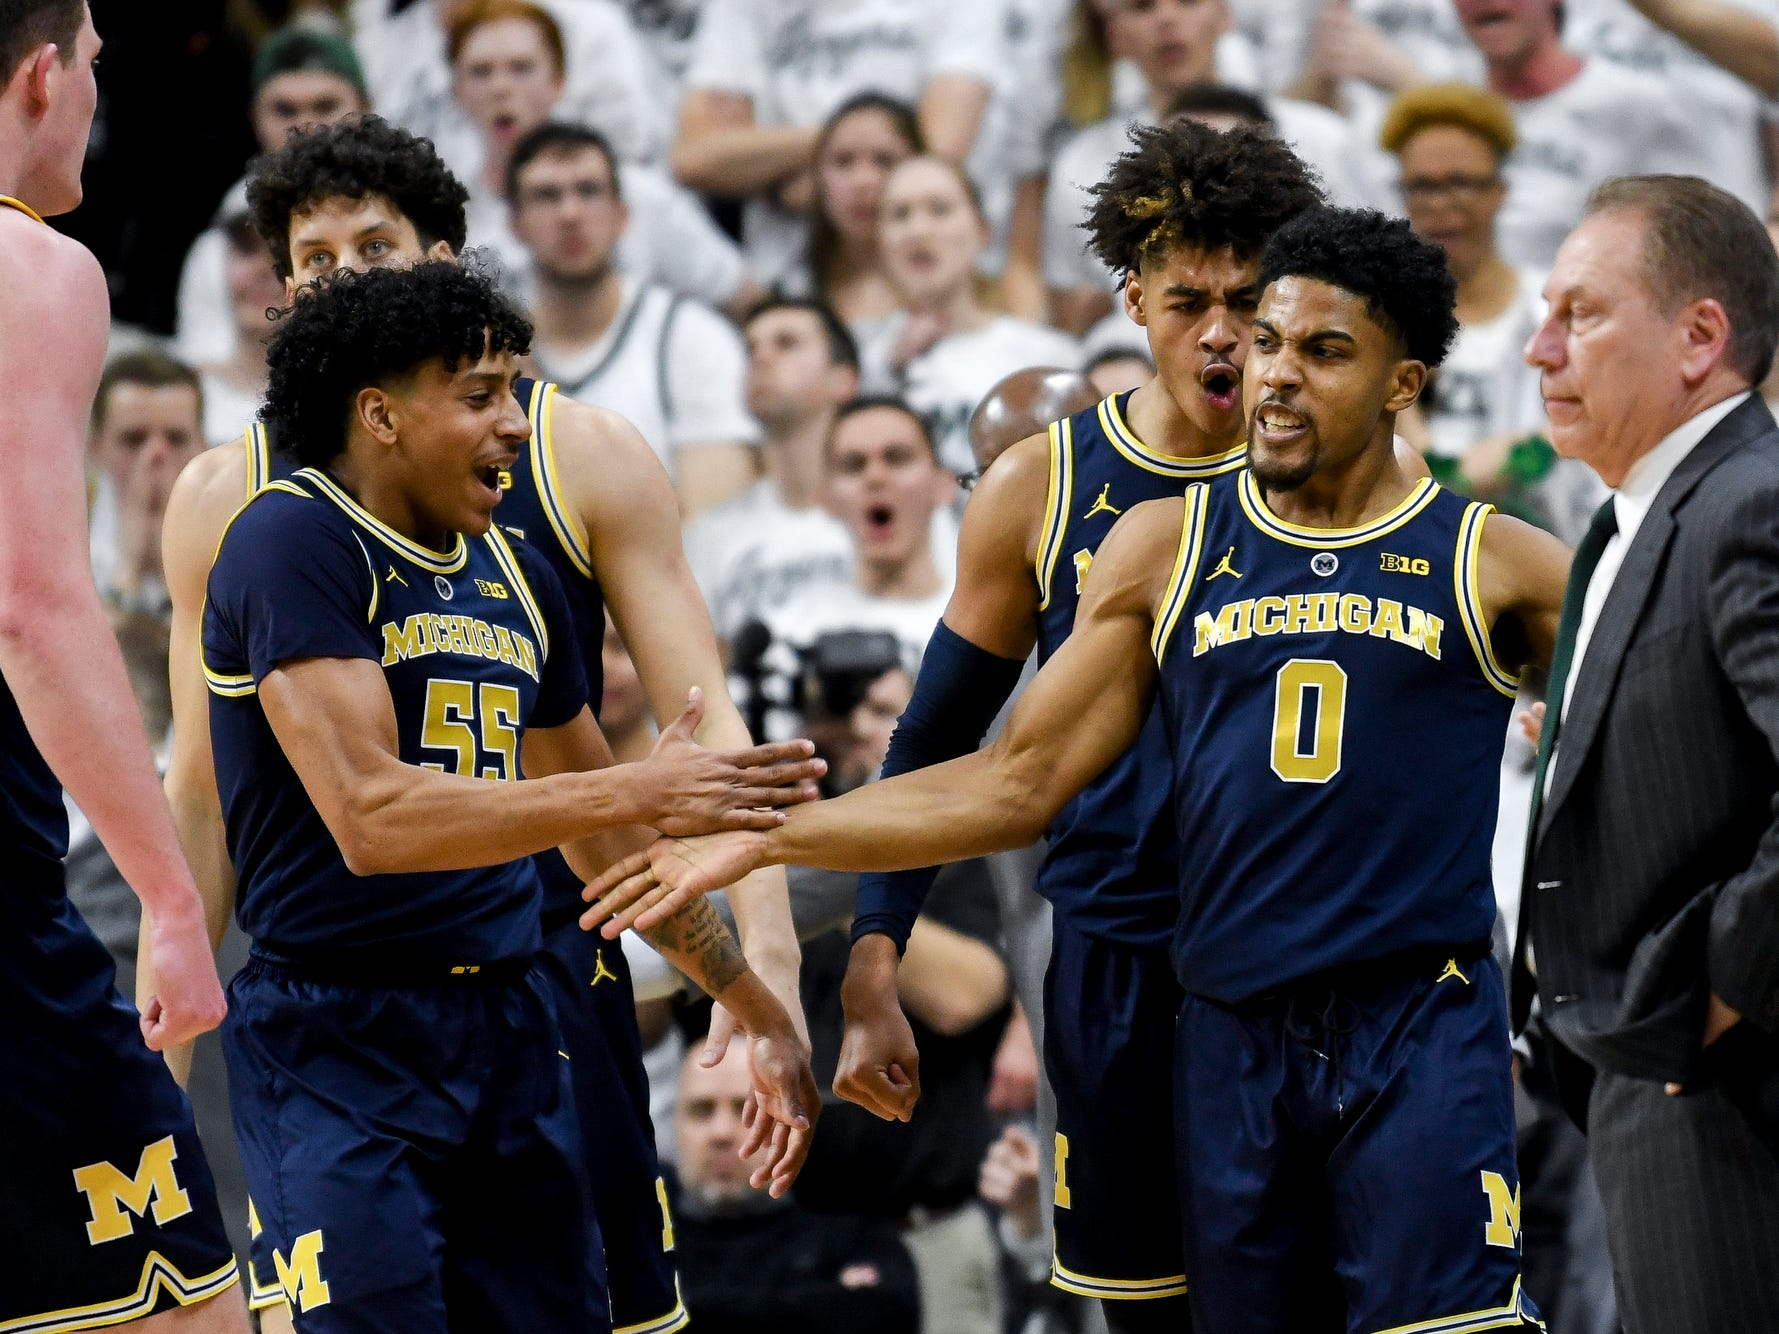 Michigan's David DeJulius, right, celebrates after drawing a MSU foul while shooting during the first half on Saturday, March 9, 2019, at the Breslin Center in East Lansing.